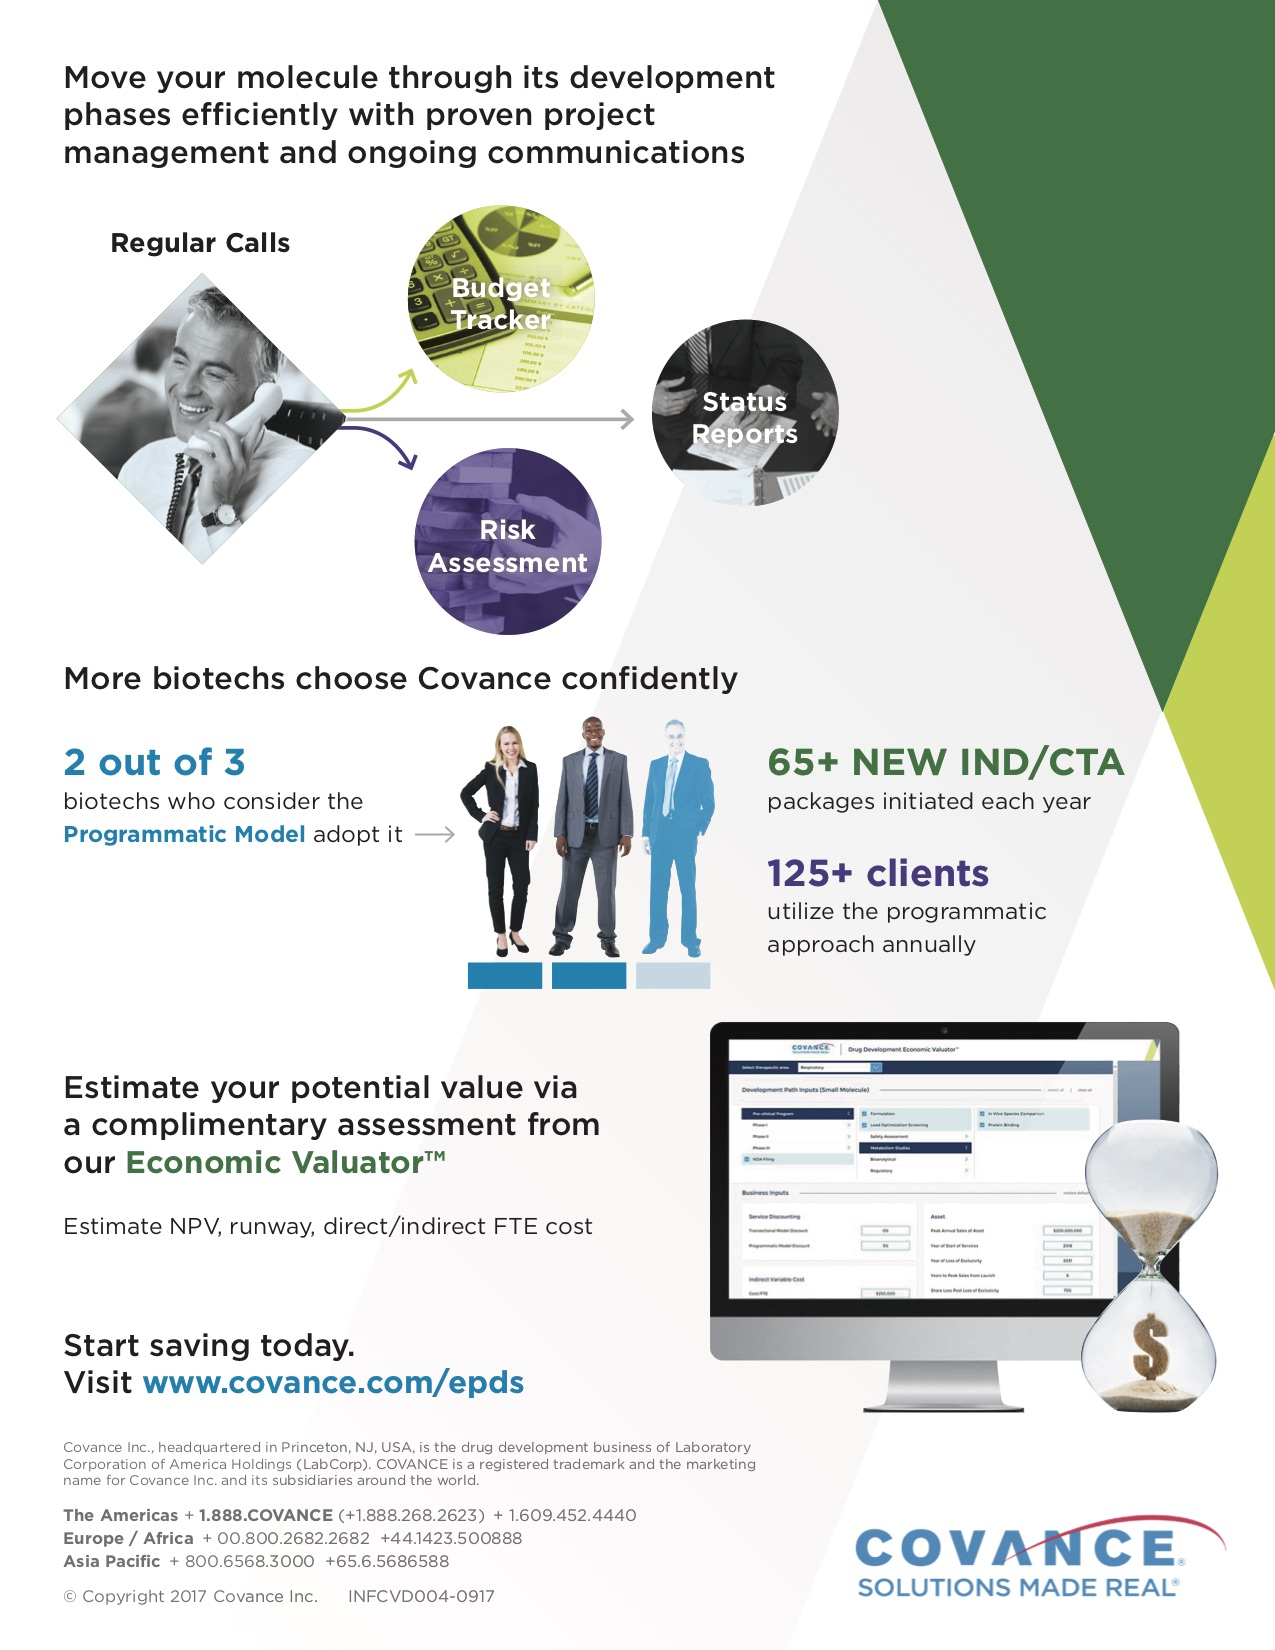 Covance Early Phase Development Solutions (EPDS) Infographic